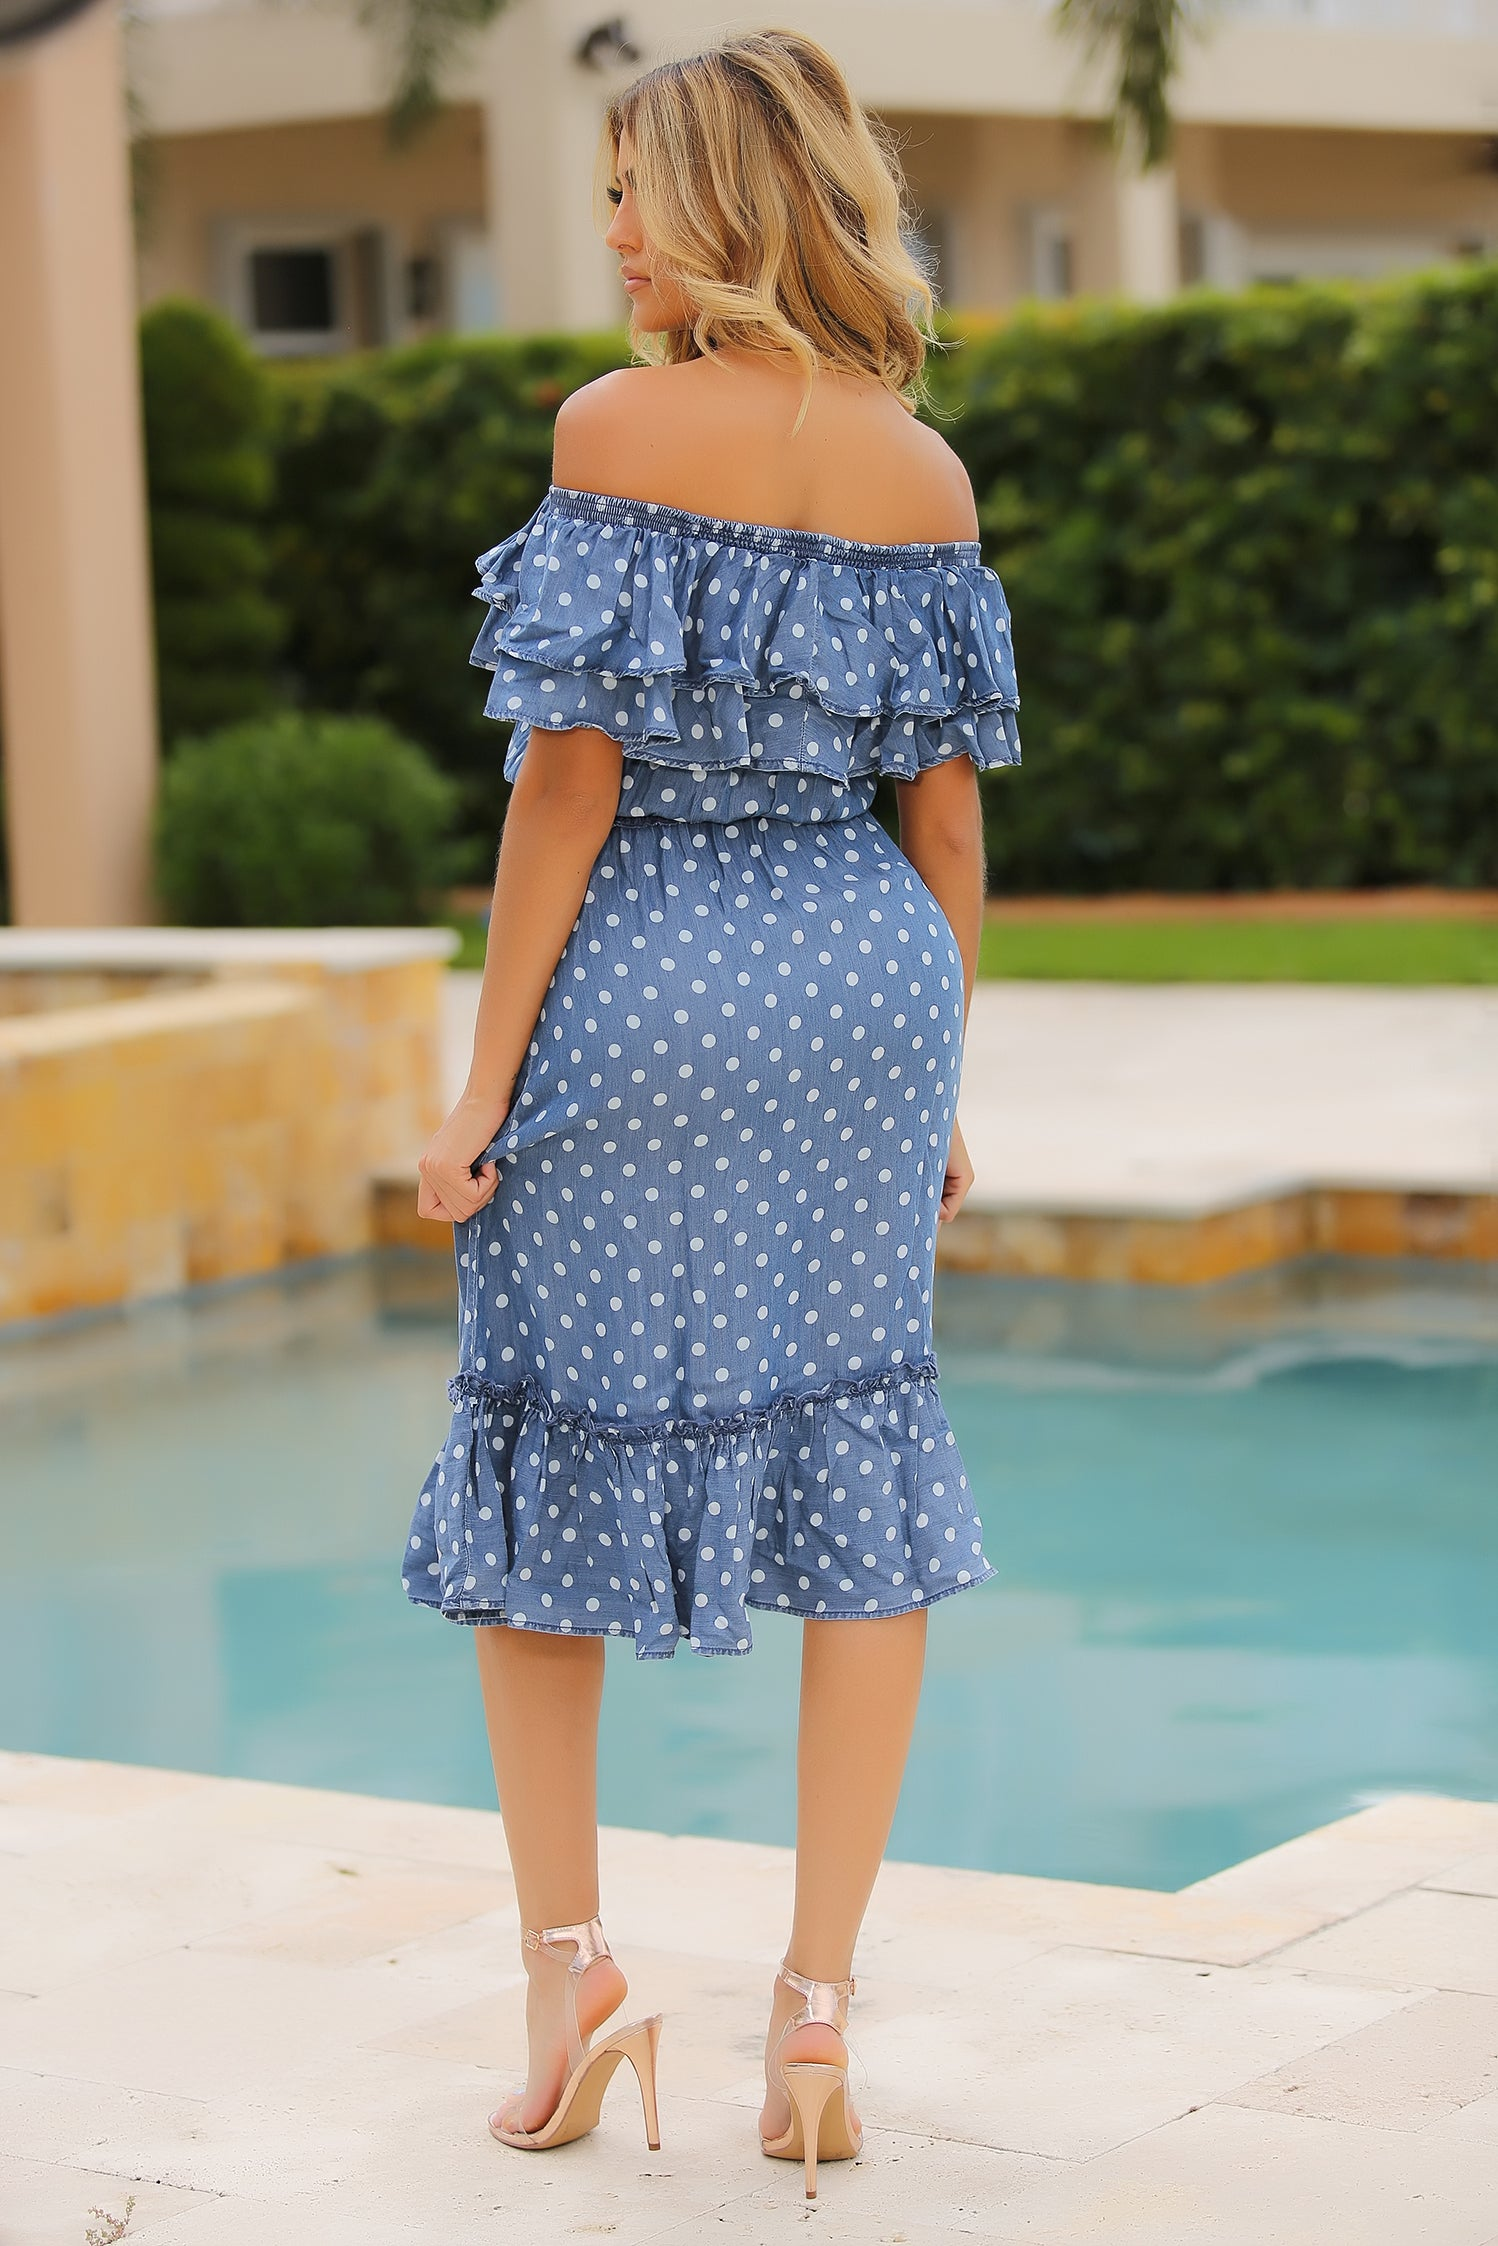 Flaunt That Polka Dot Ruffled Midi Dress - Denim - Semai House Of fashion